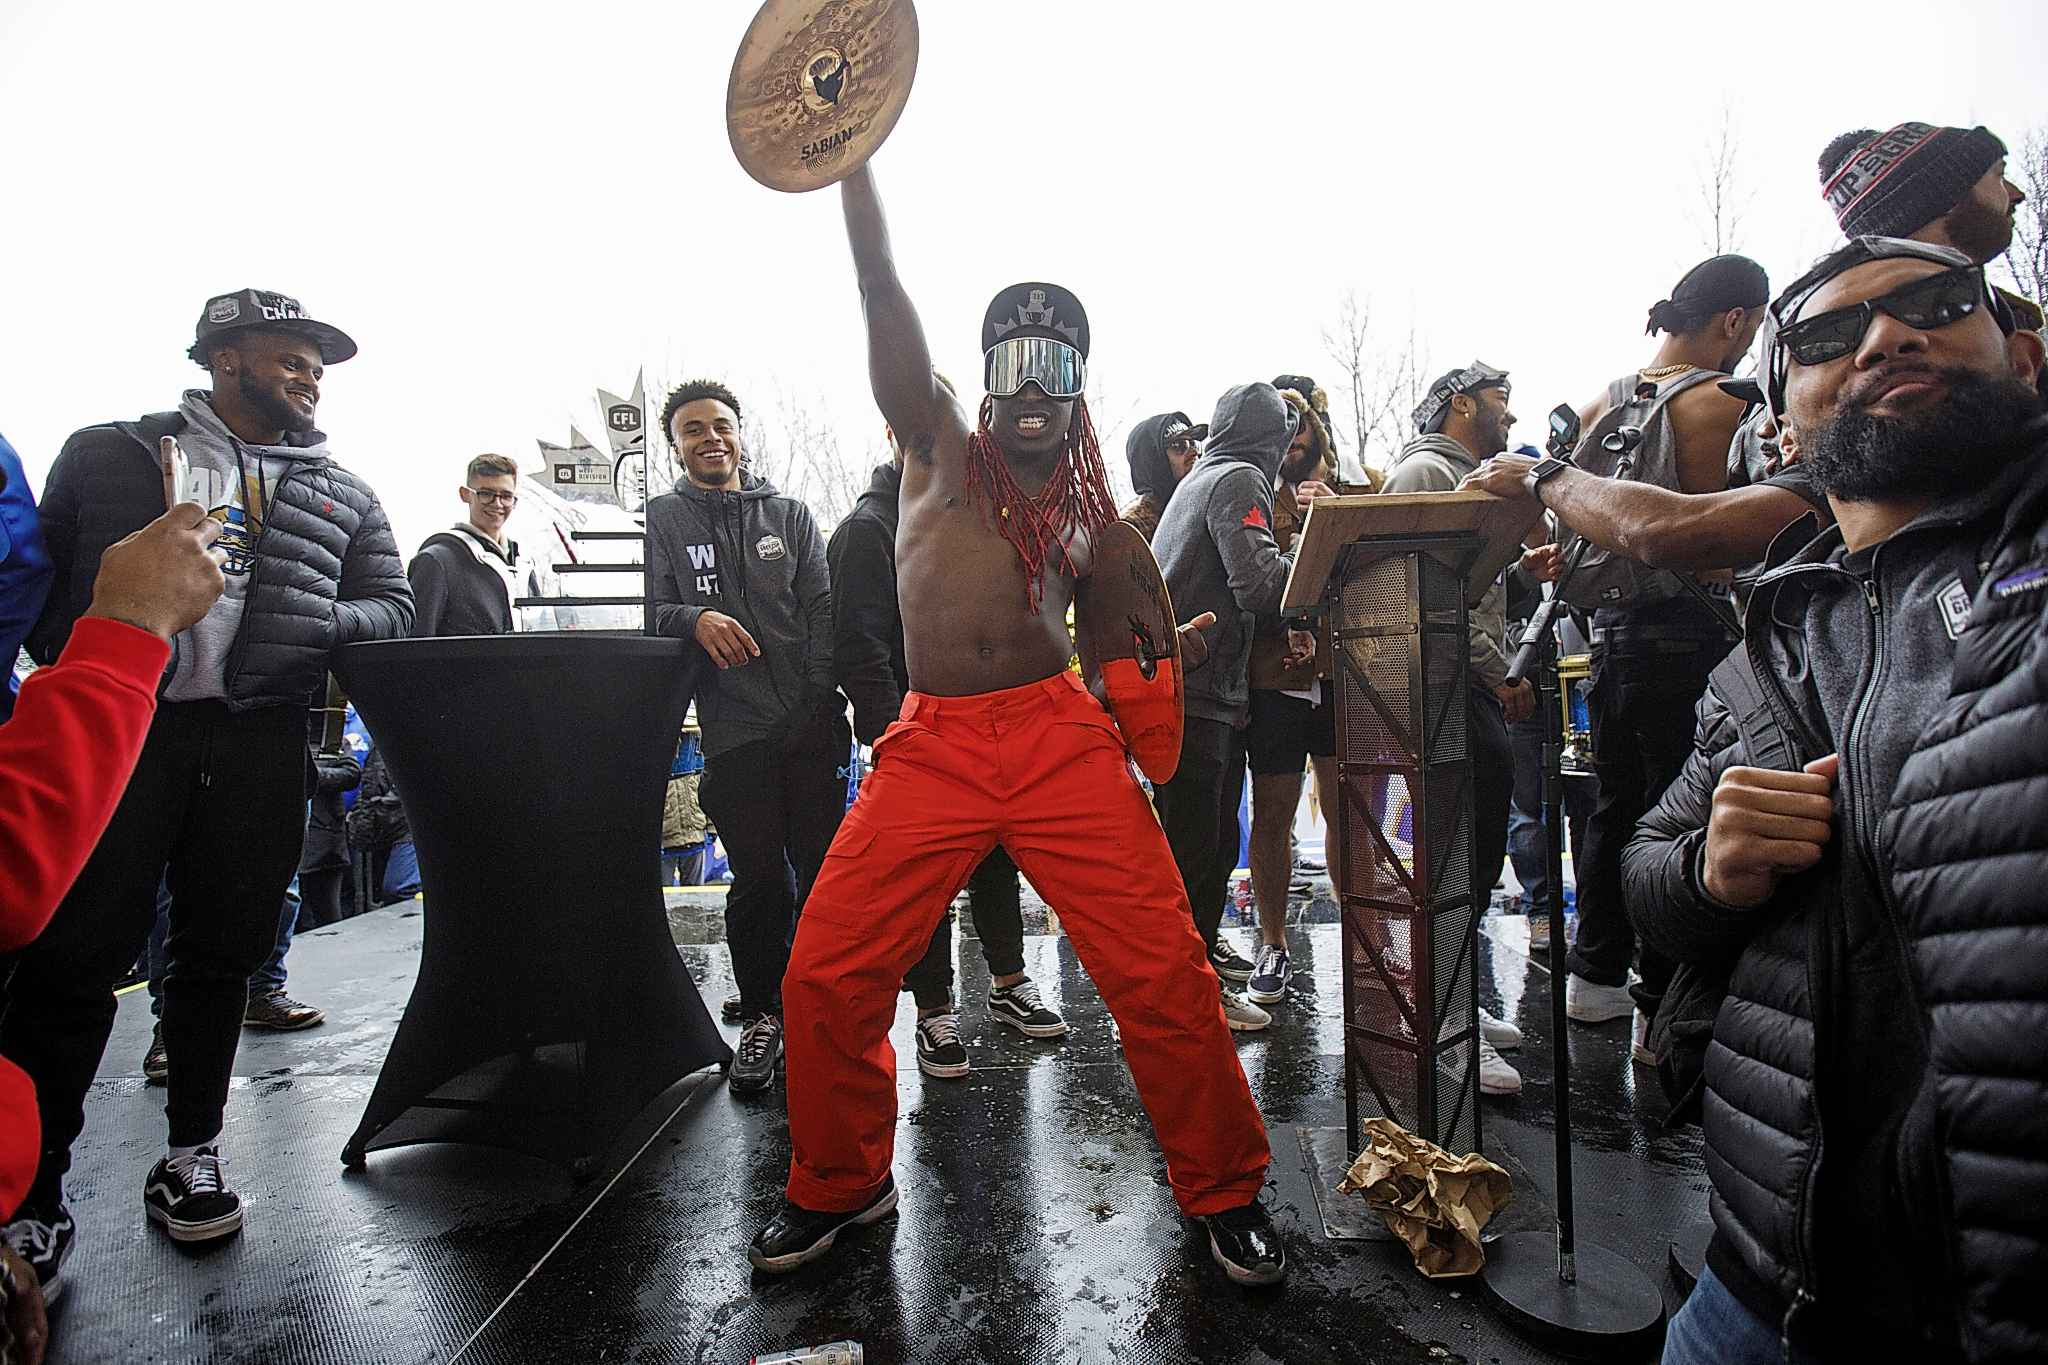 Lucky Whitehead treated the celebration like a day at the beach. (Mike Deal / Winnipeg Free Press)